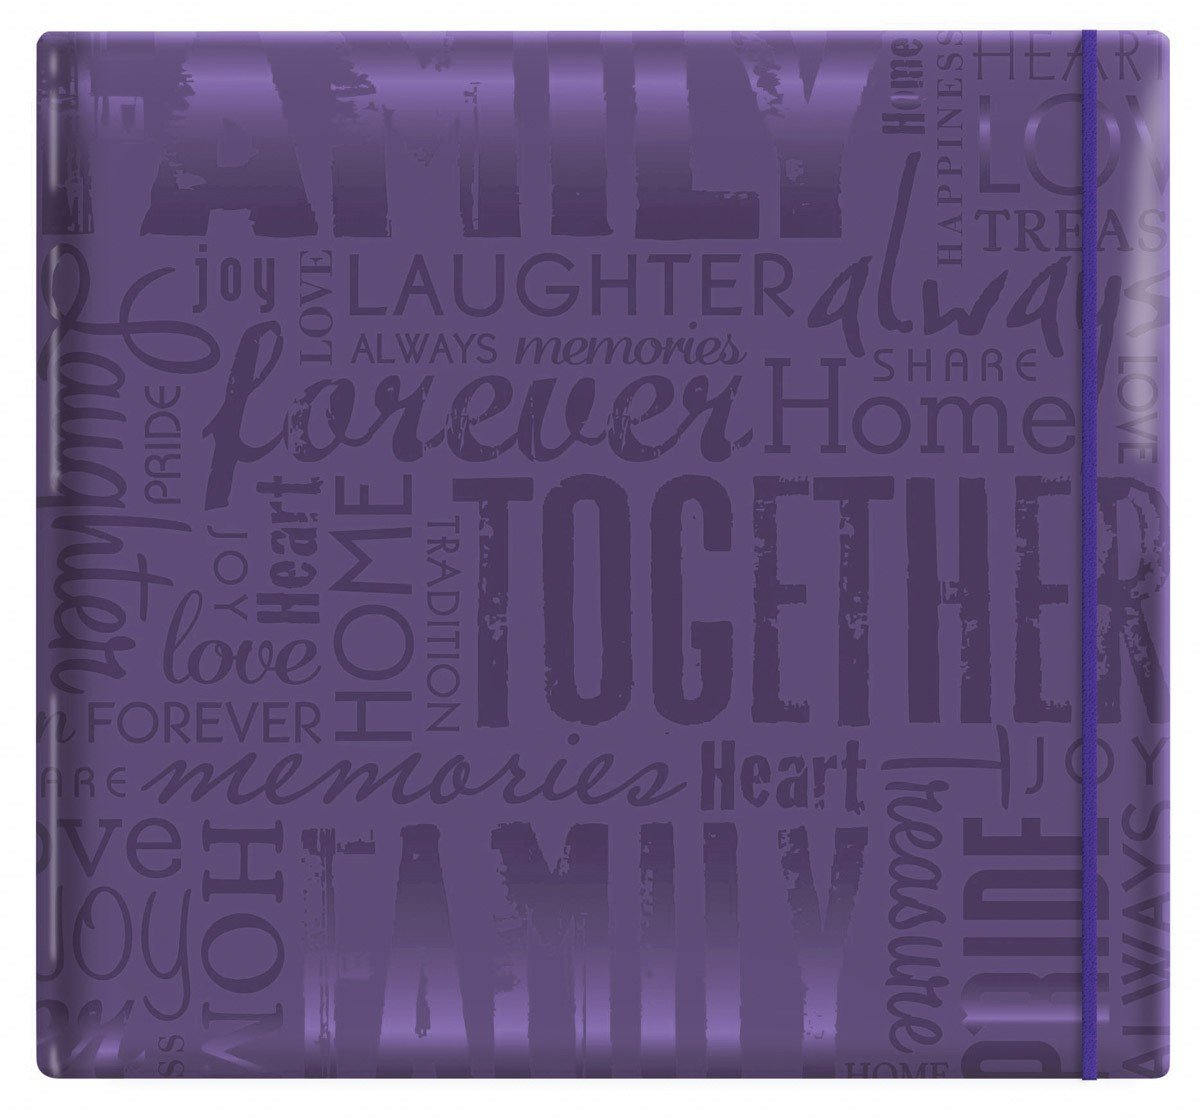 "MCS MBI 13.5x12.5 Inch Embossed Gloss Expressions Scrapbook Album with 12x12 Inch Pages, Deep Purple, Embossed ""Family"" (848116)"